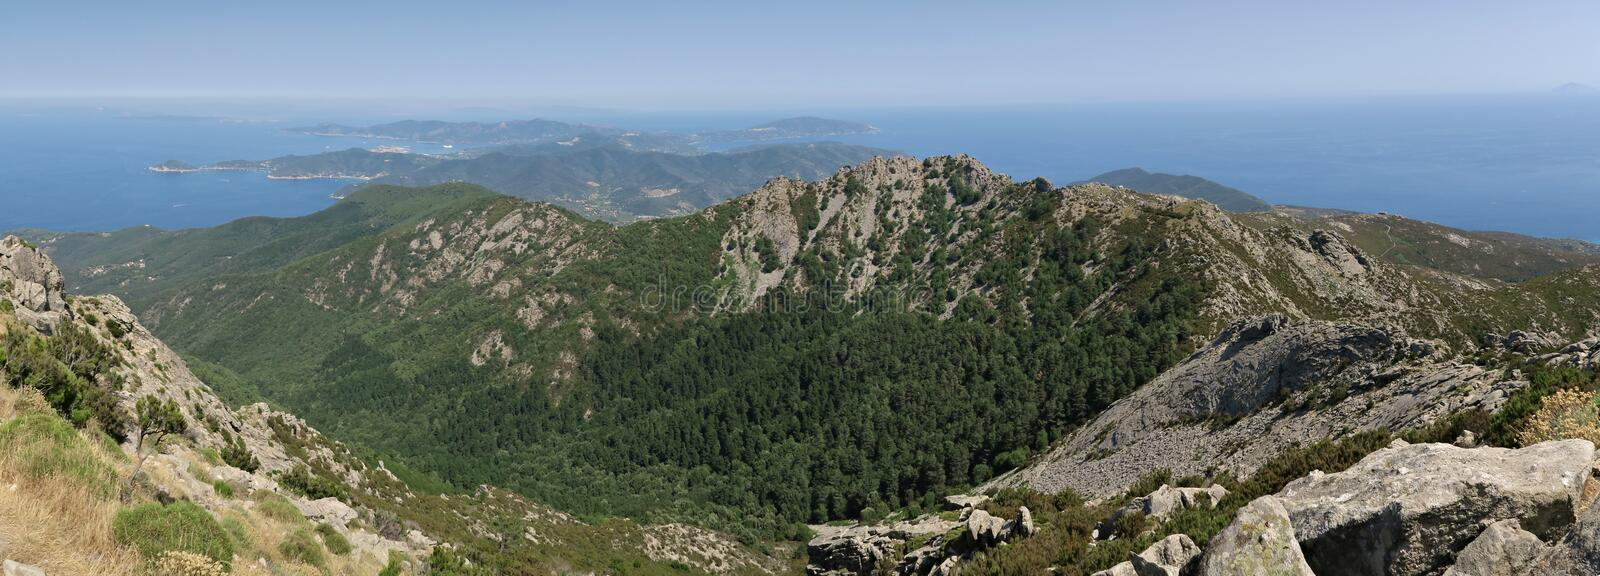 East view from the top of Monte Capanne on the island Elba royalty free stock photos